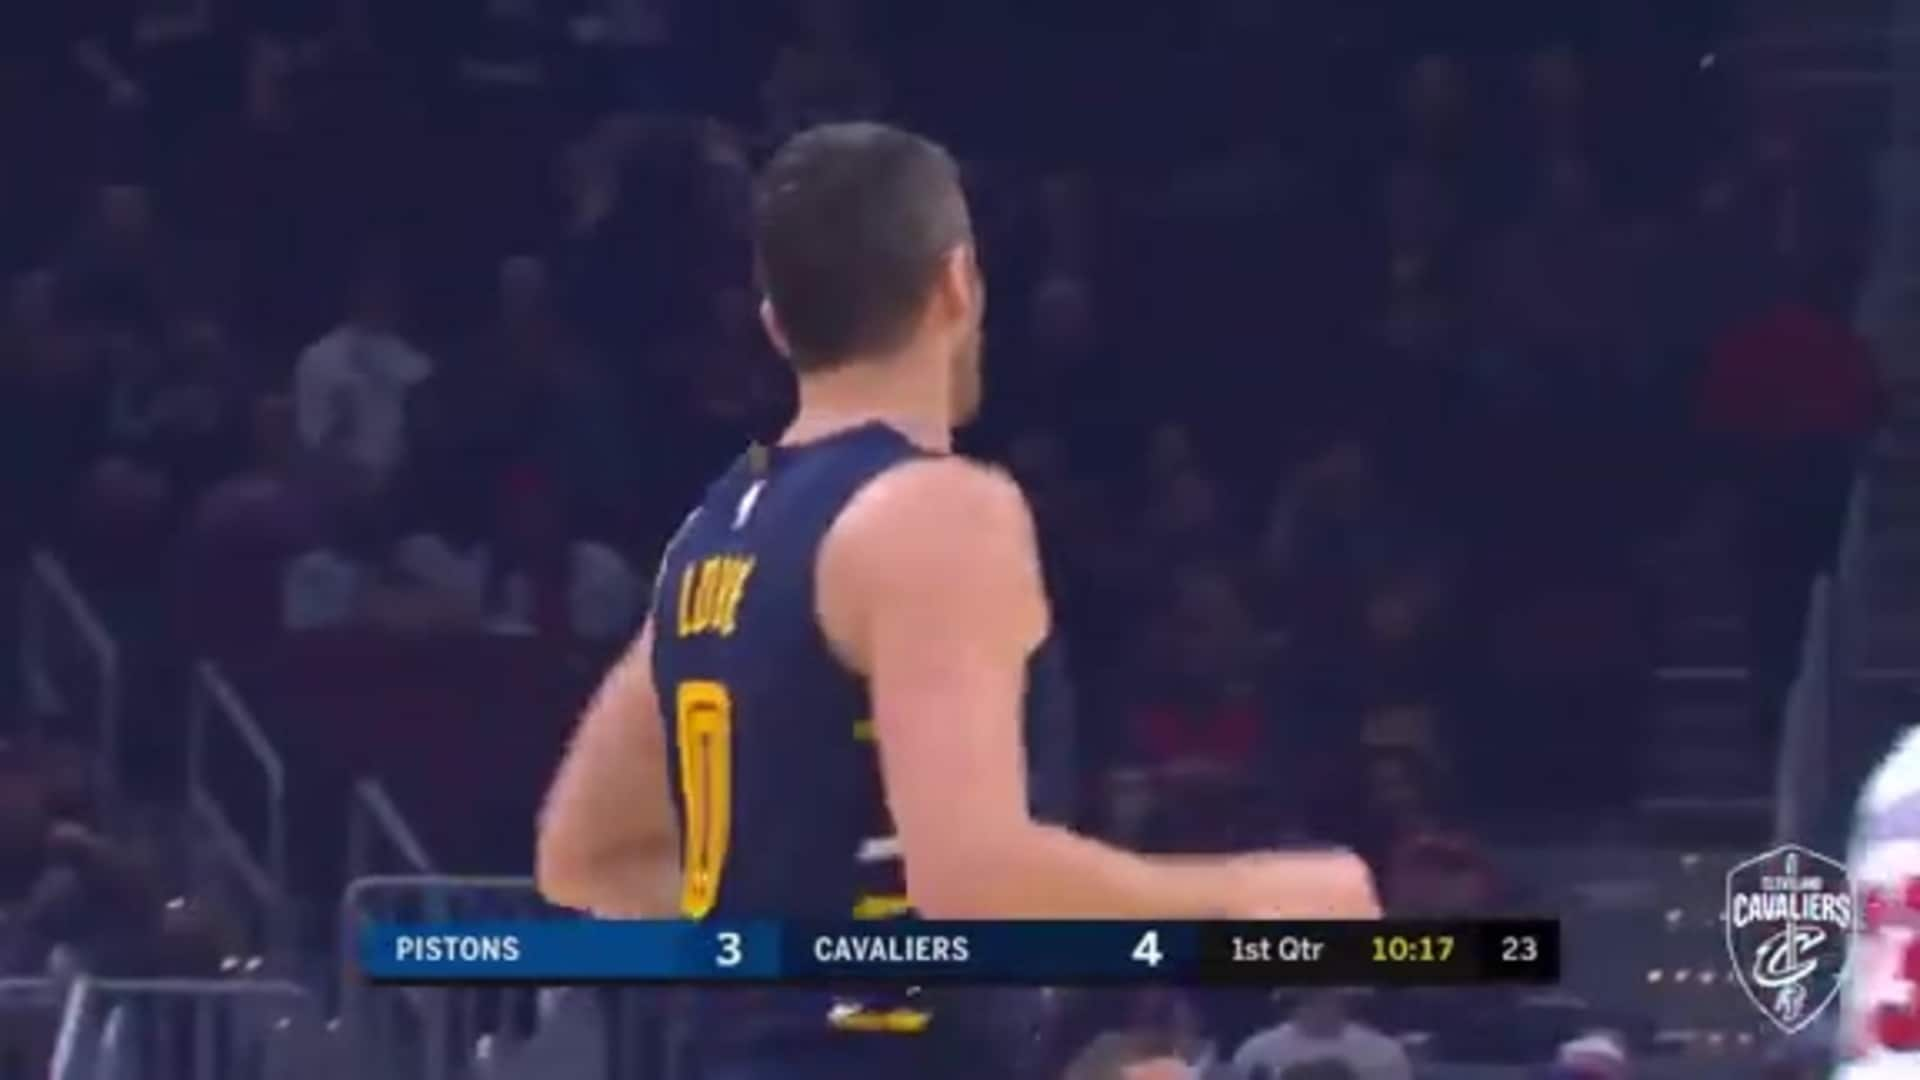 KLove Gets the Cavs Off and Running